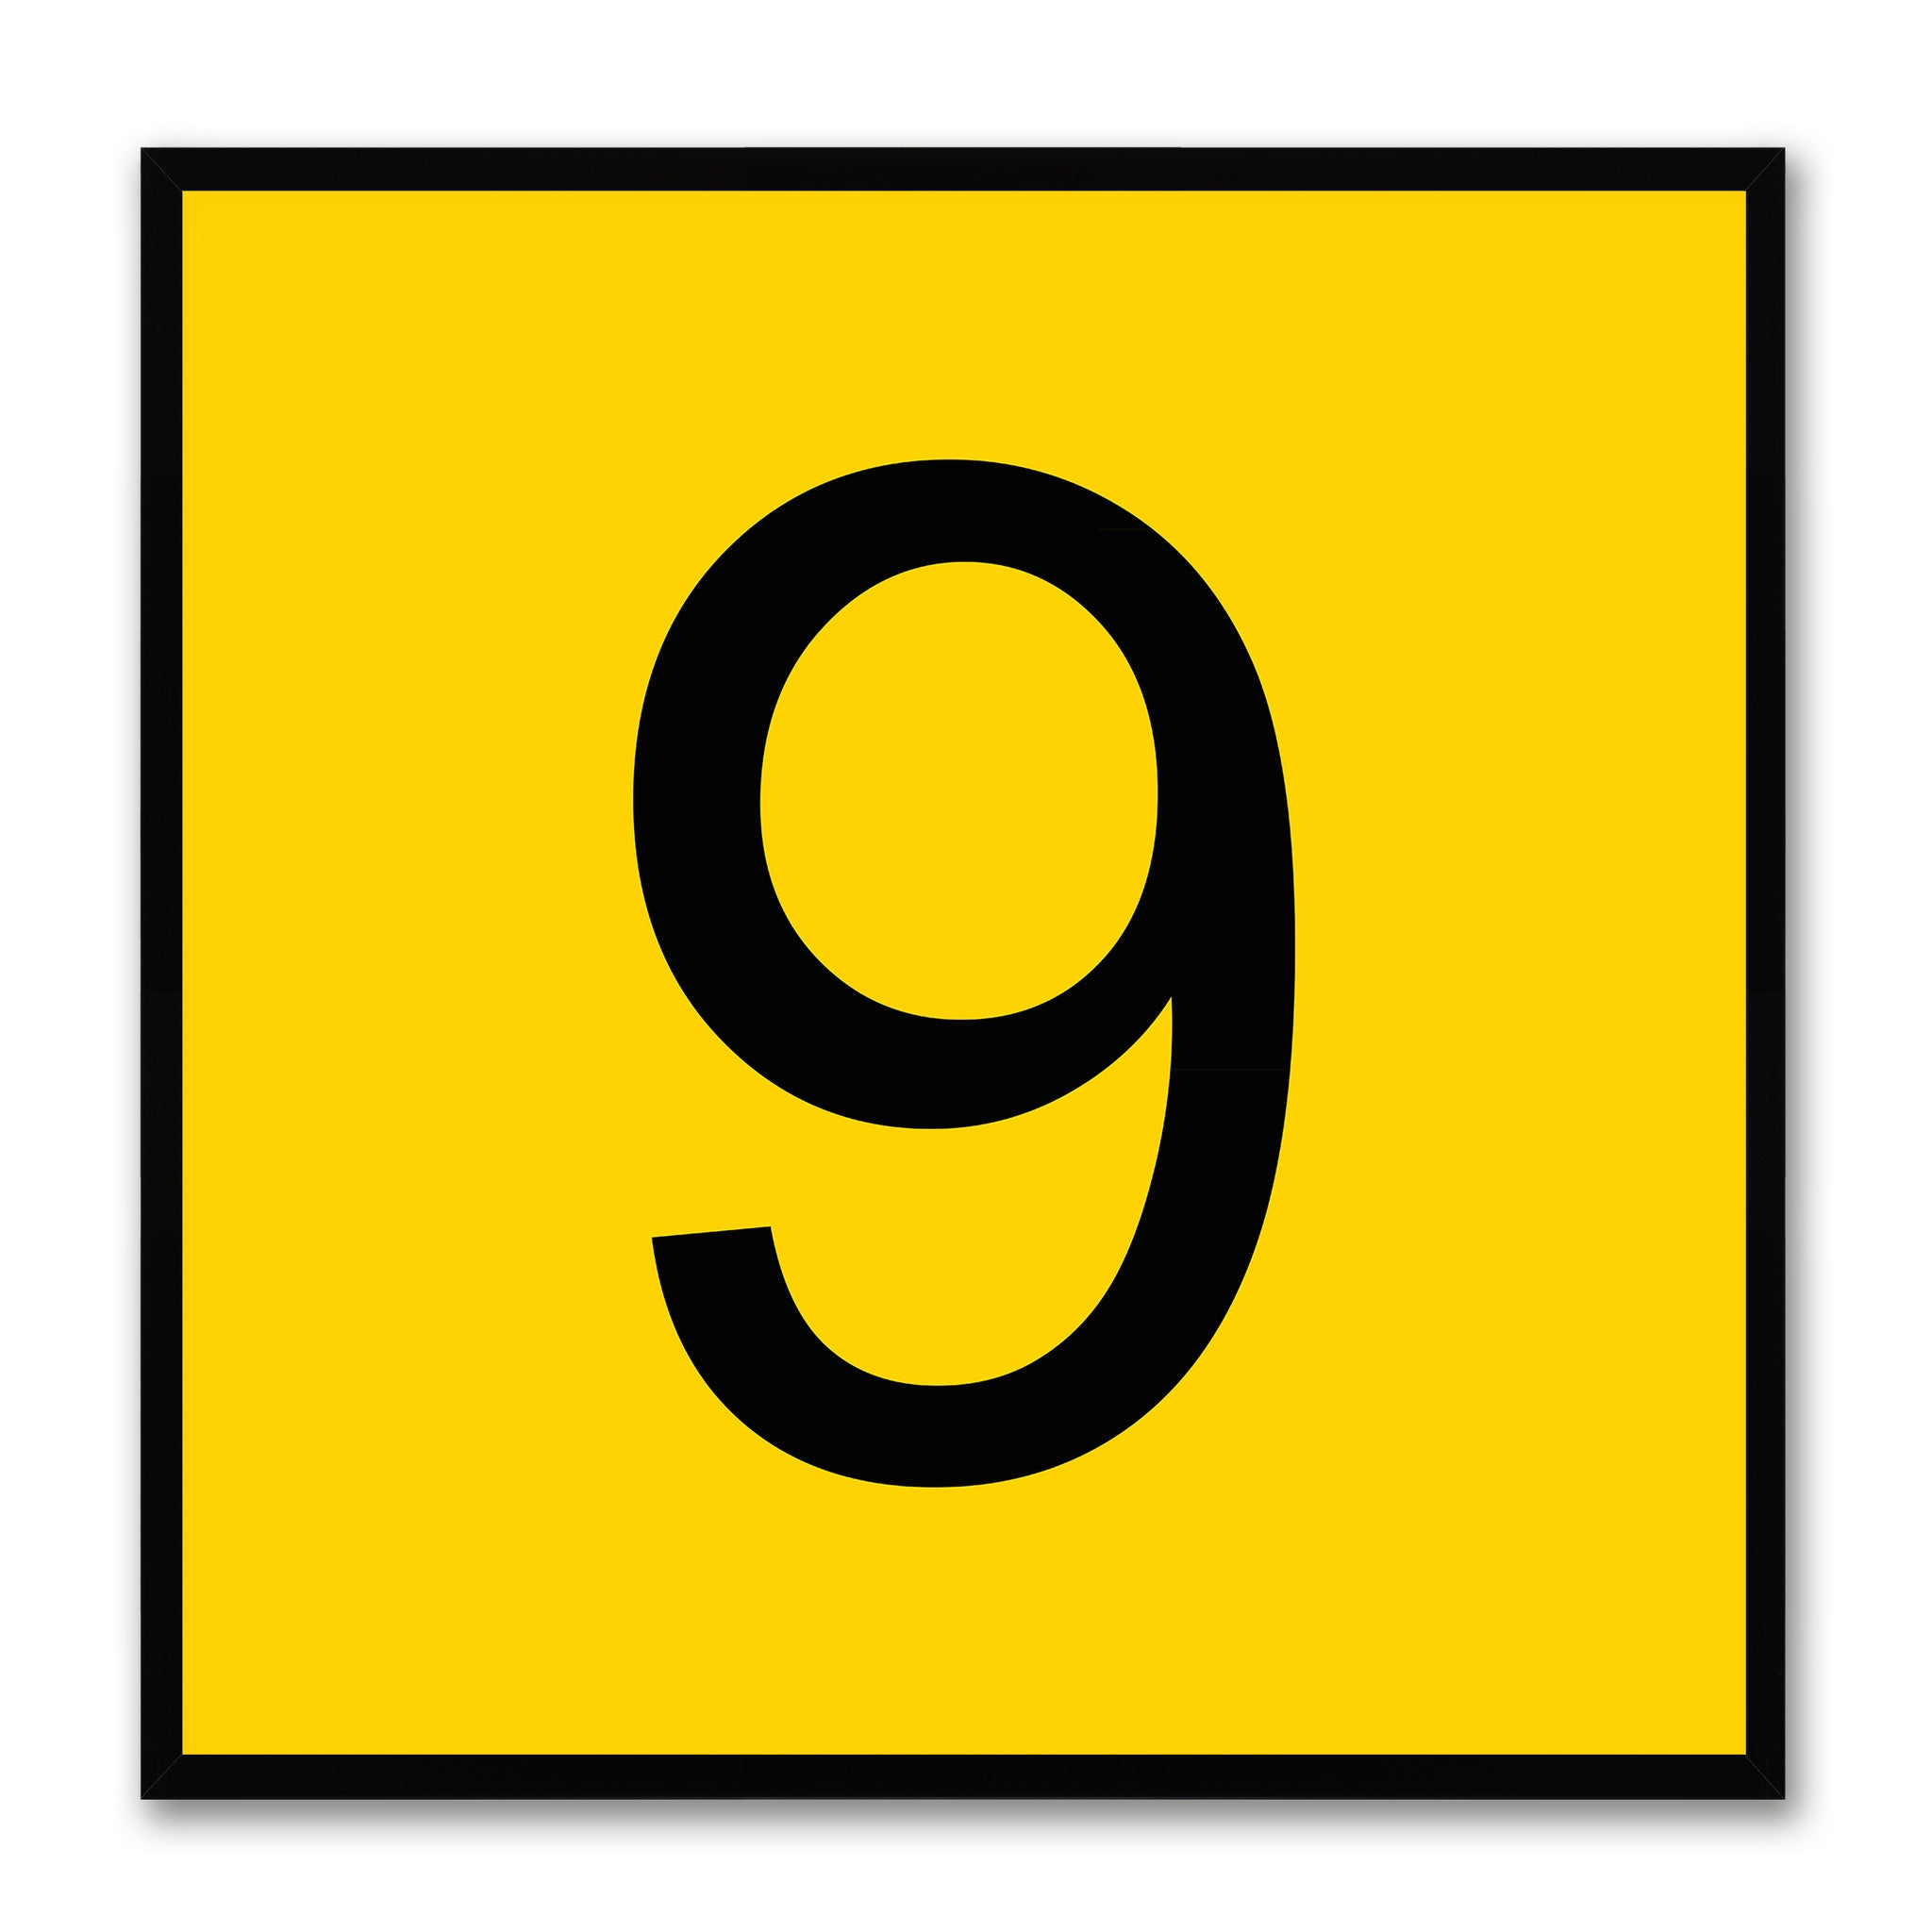 Number 9 Yellow Canvas Print Black Frame Kids Bedroom Wall Décor Home Art